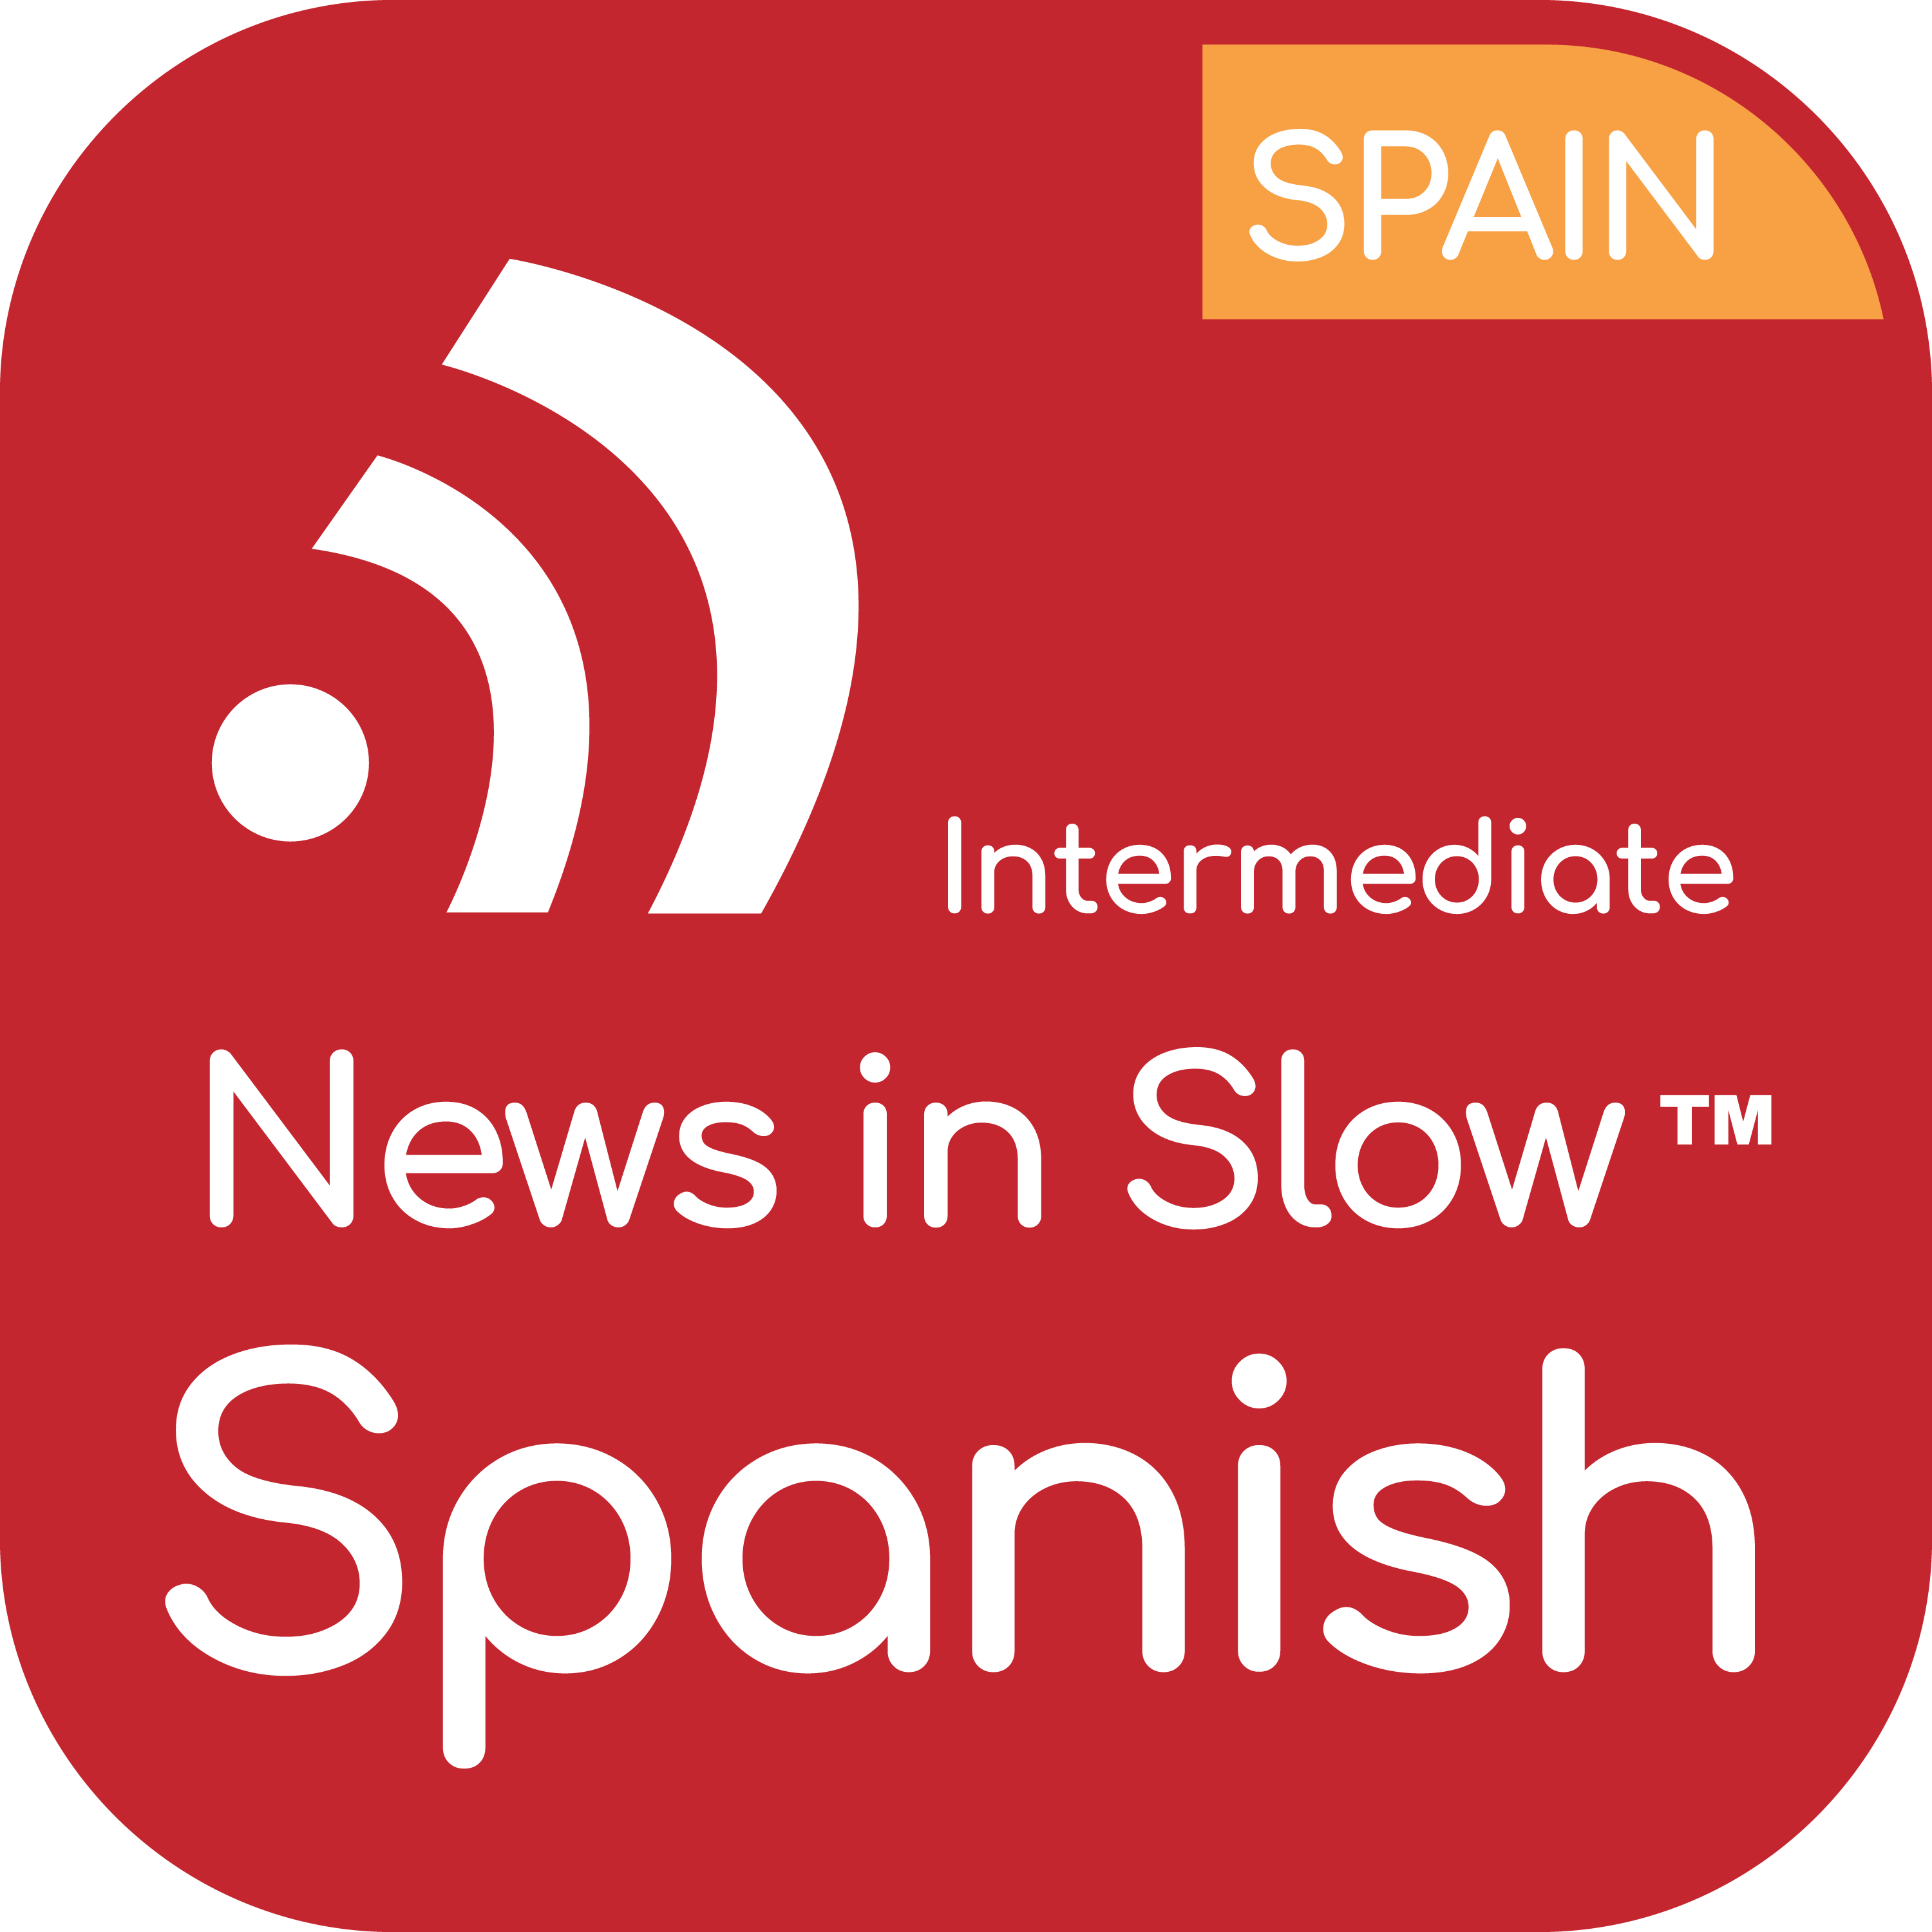 News in Slow Spanish - #631 - Easy Spanish Conversation about Current Events